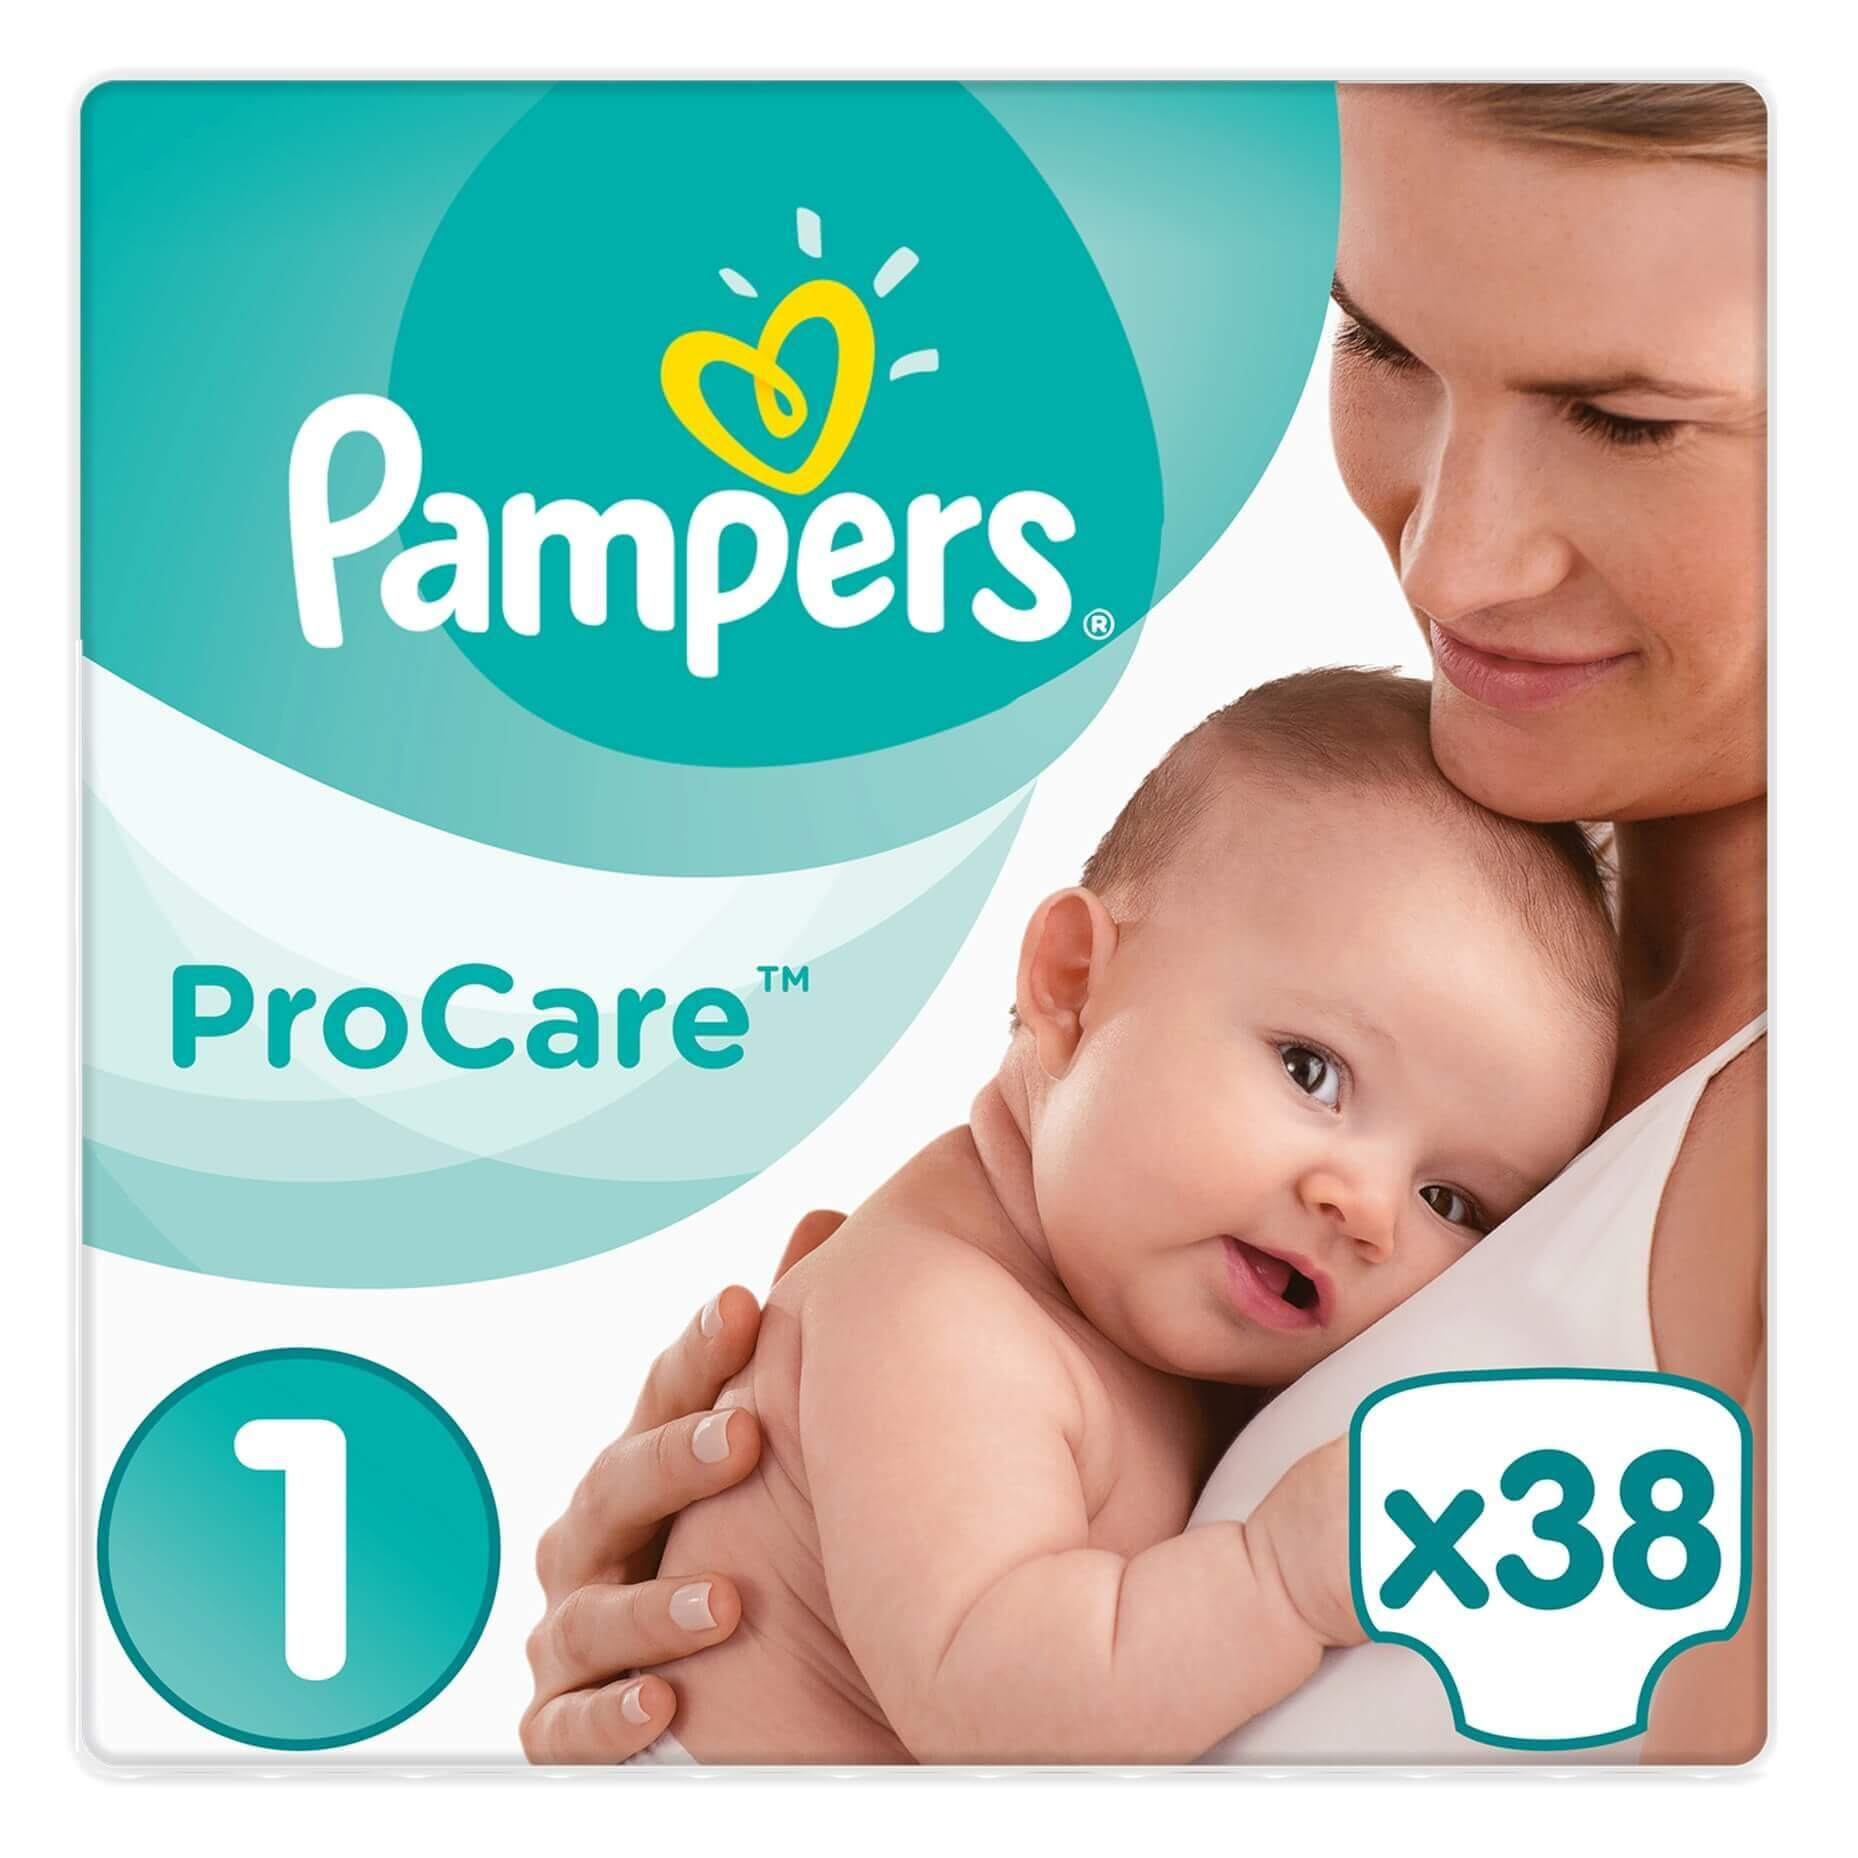 Pampers ProCare Premium Protection No1 (2-5kg) 38 πάνες  μητέρα παιδί   περιποίηση για το μωρό   πάνες για το μωρό